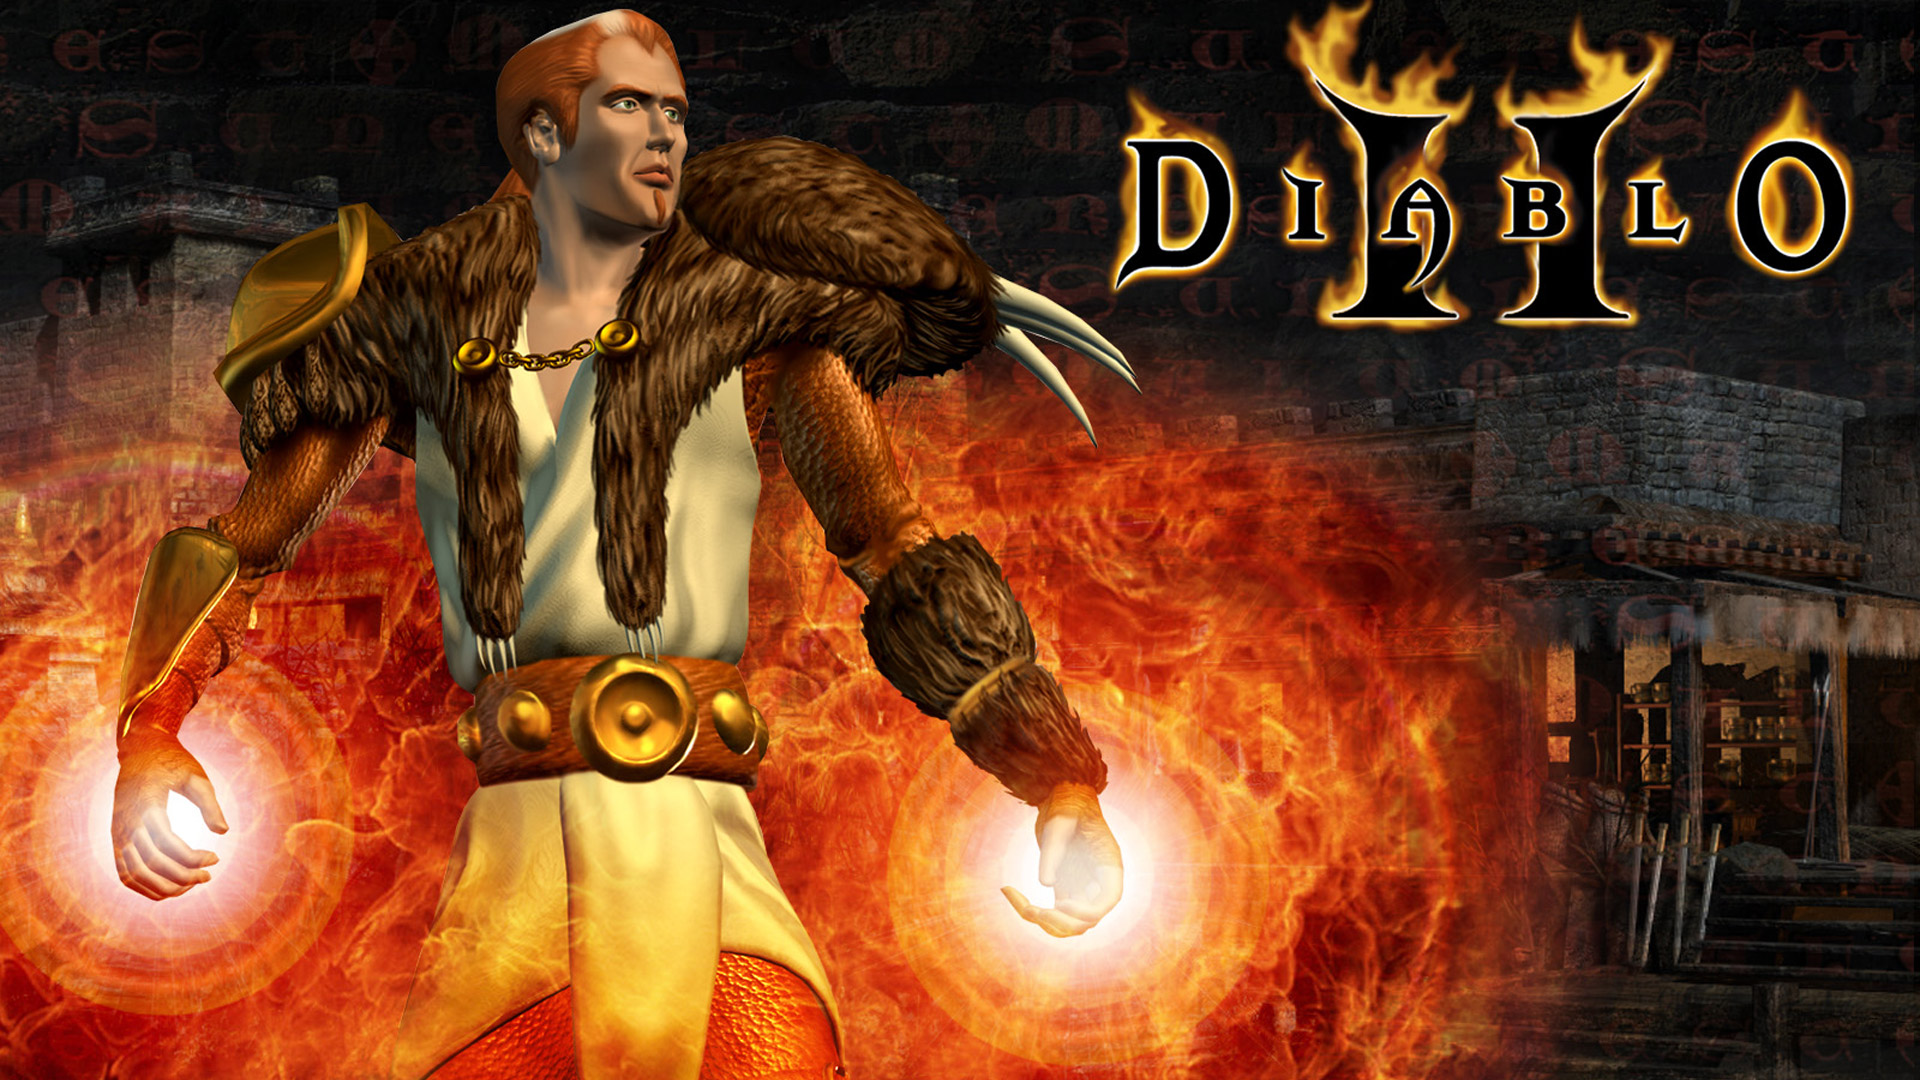 Free Diablo II Wallpaper in 1920x1080